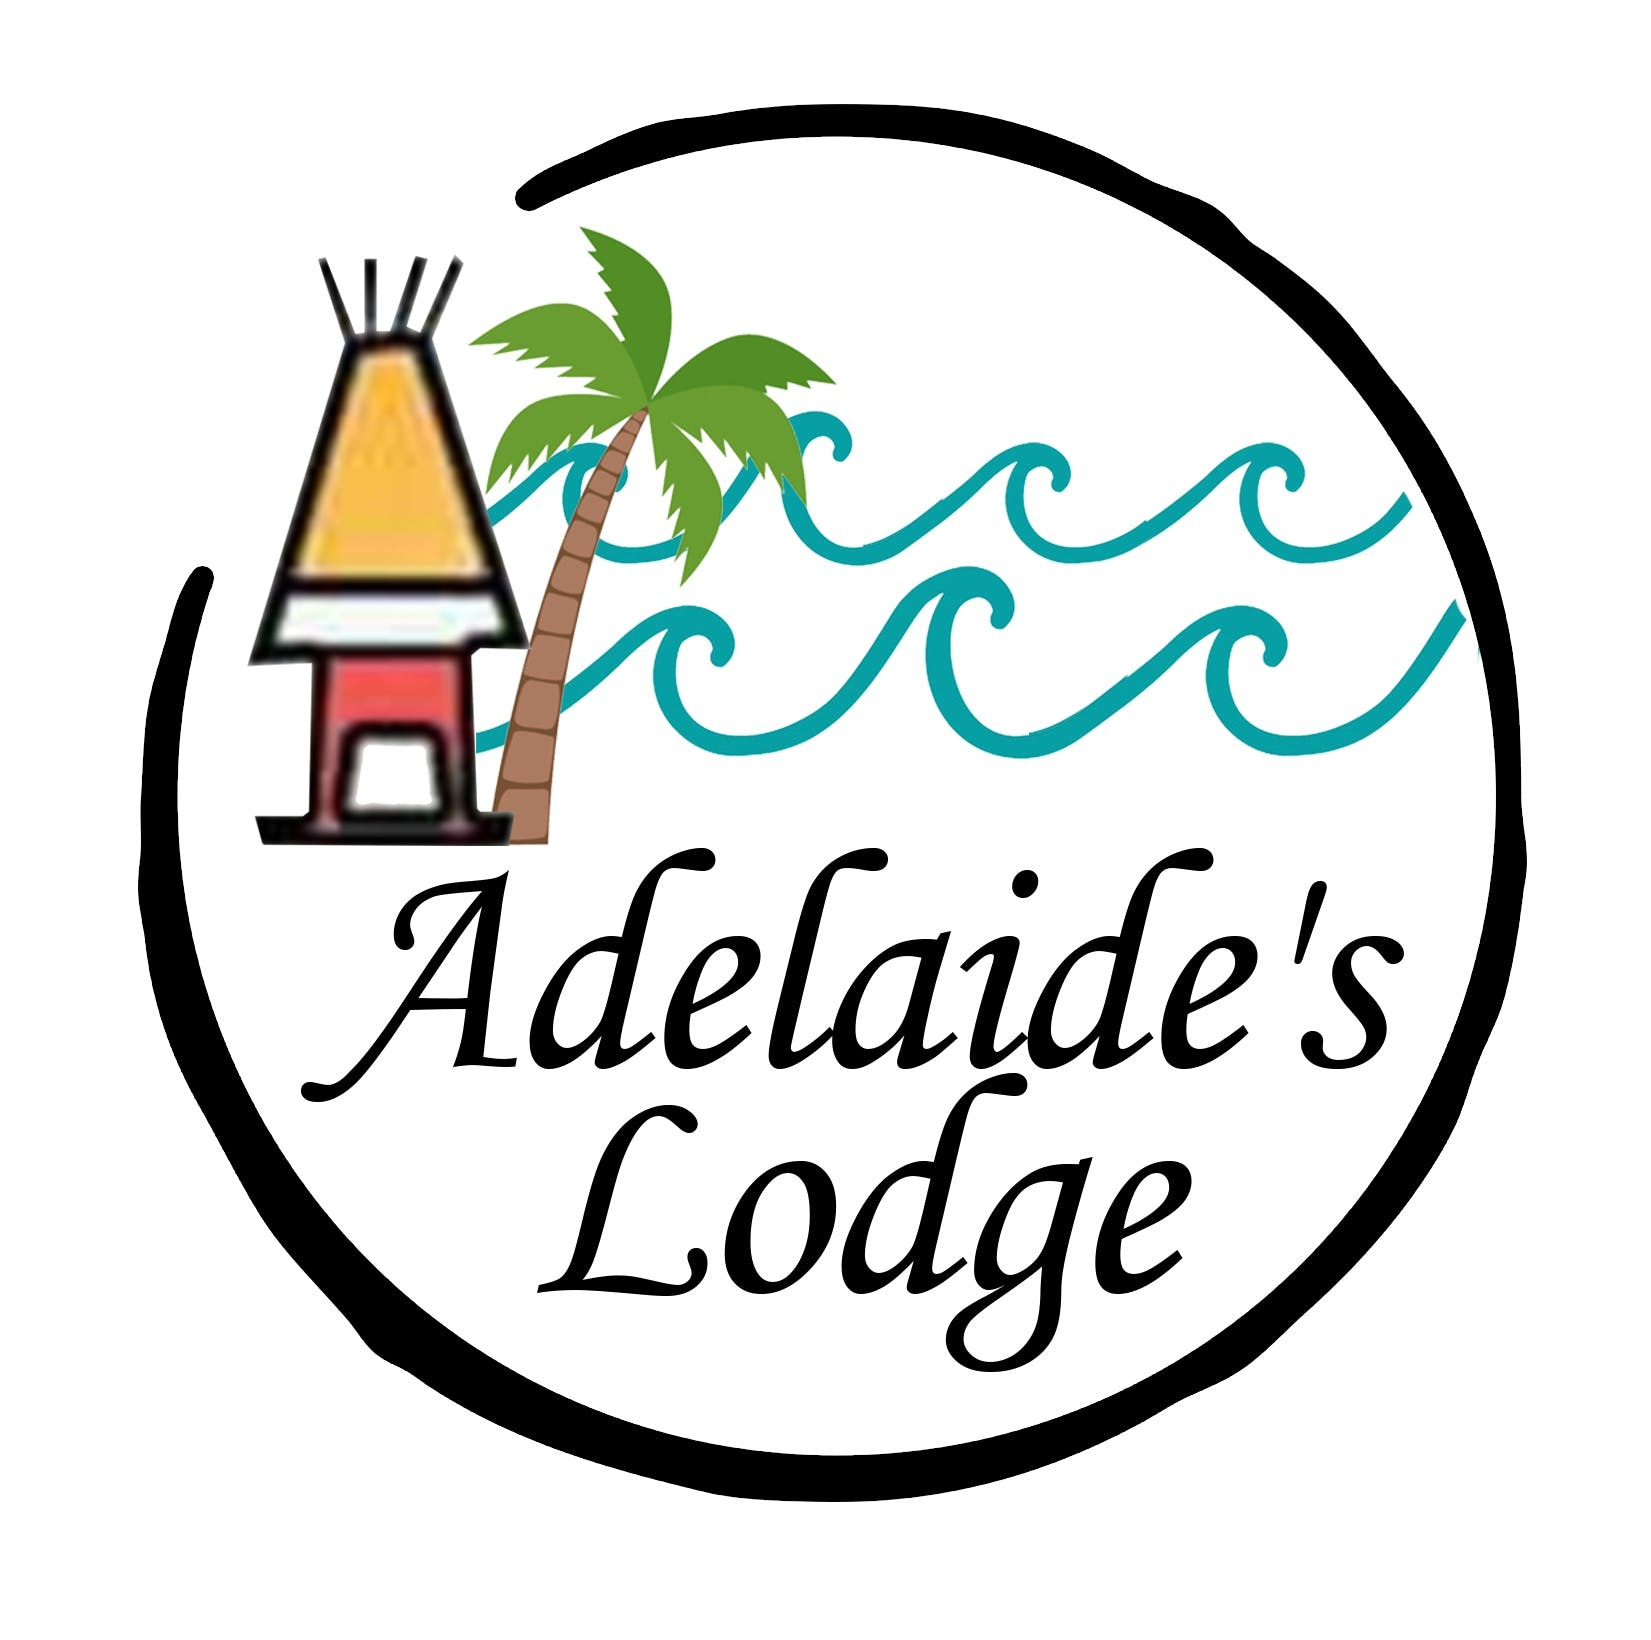 Adelaide's Lodge